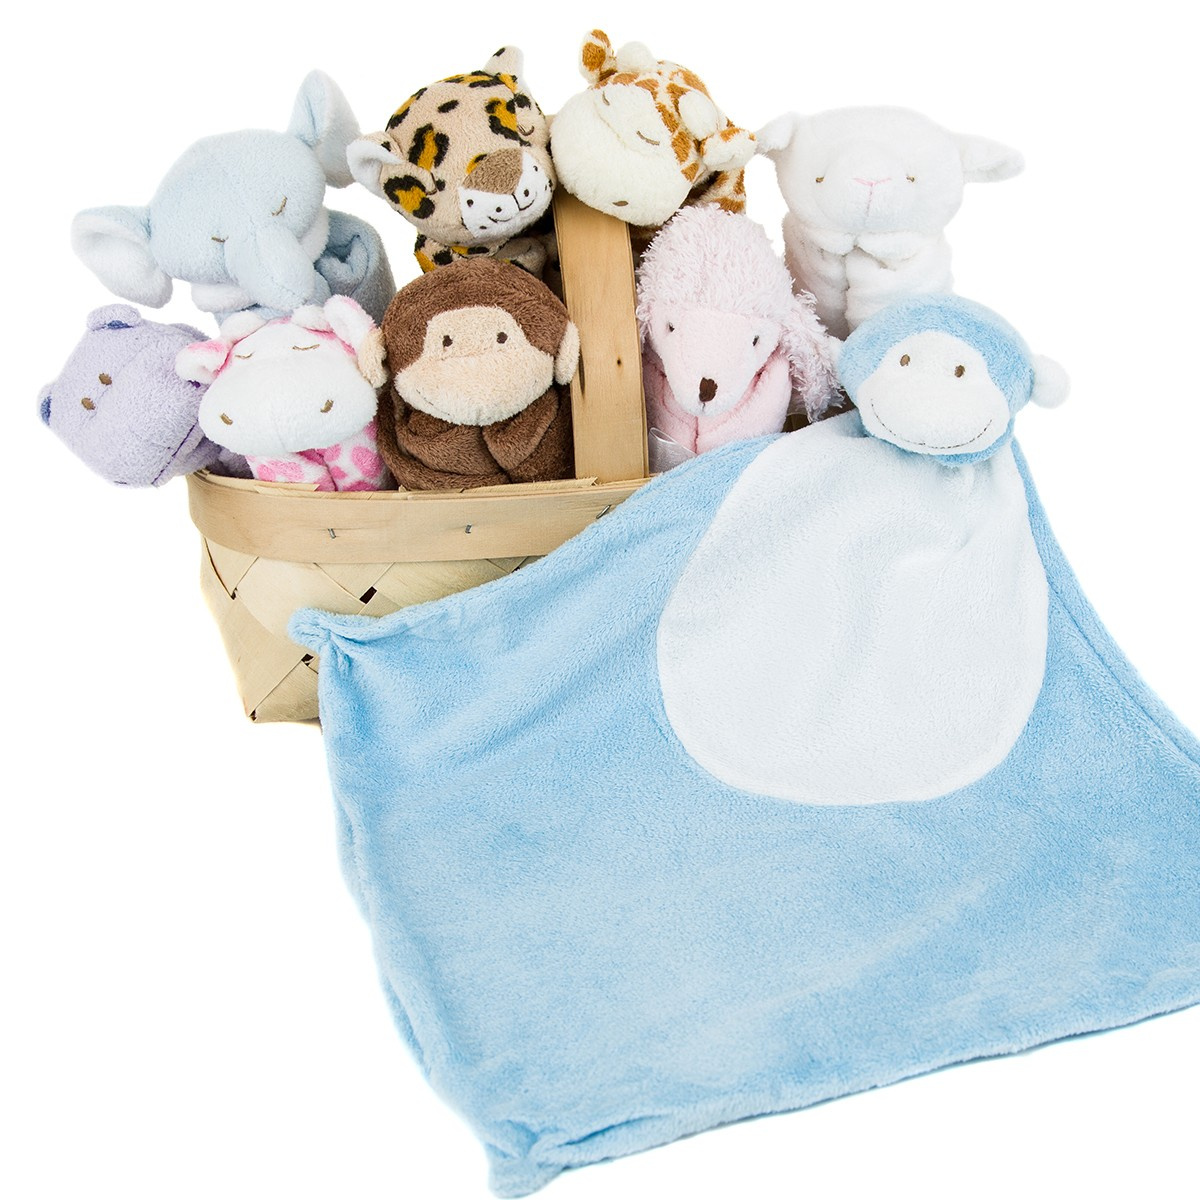 Security blankets provide soothing comfort to your baby.